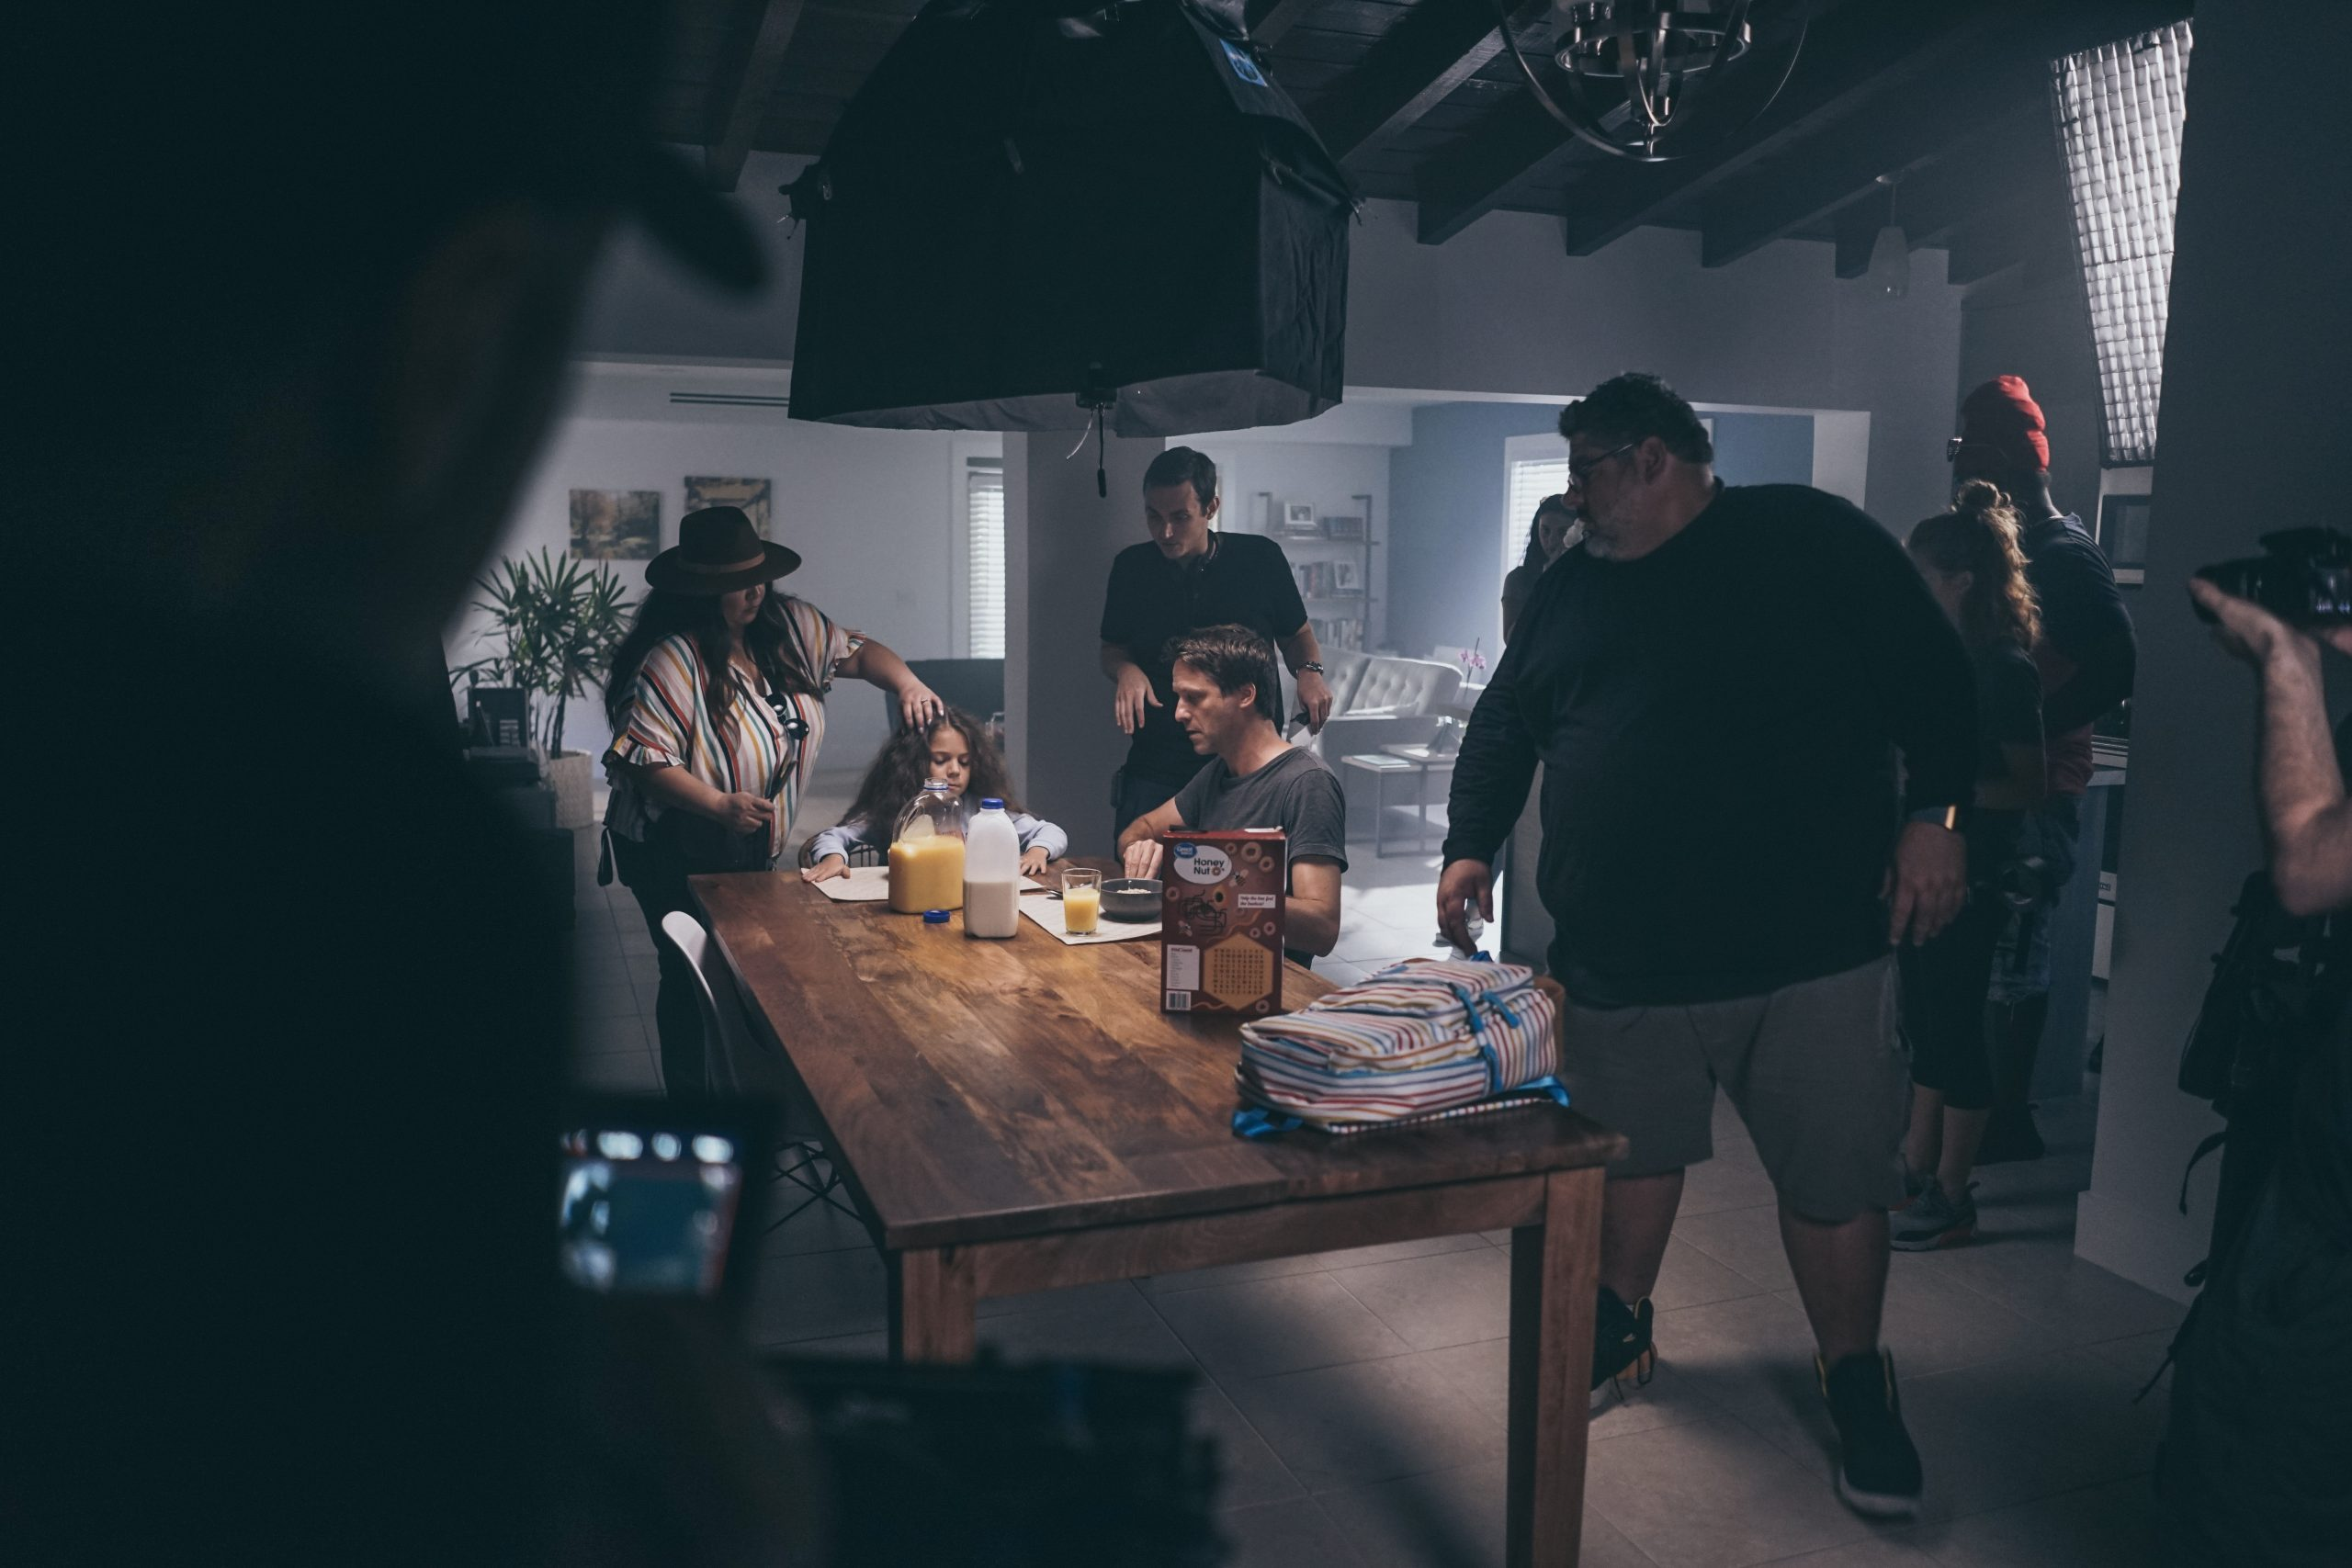 Brady - New Morning Routine - Artex Productions - South Florida's Best Commercial Video Production Company